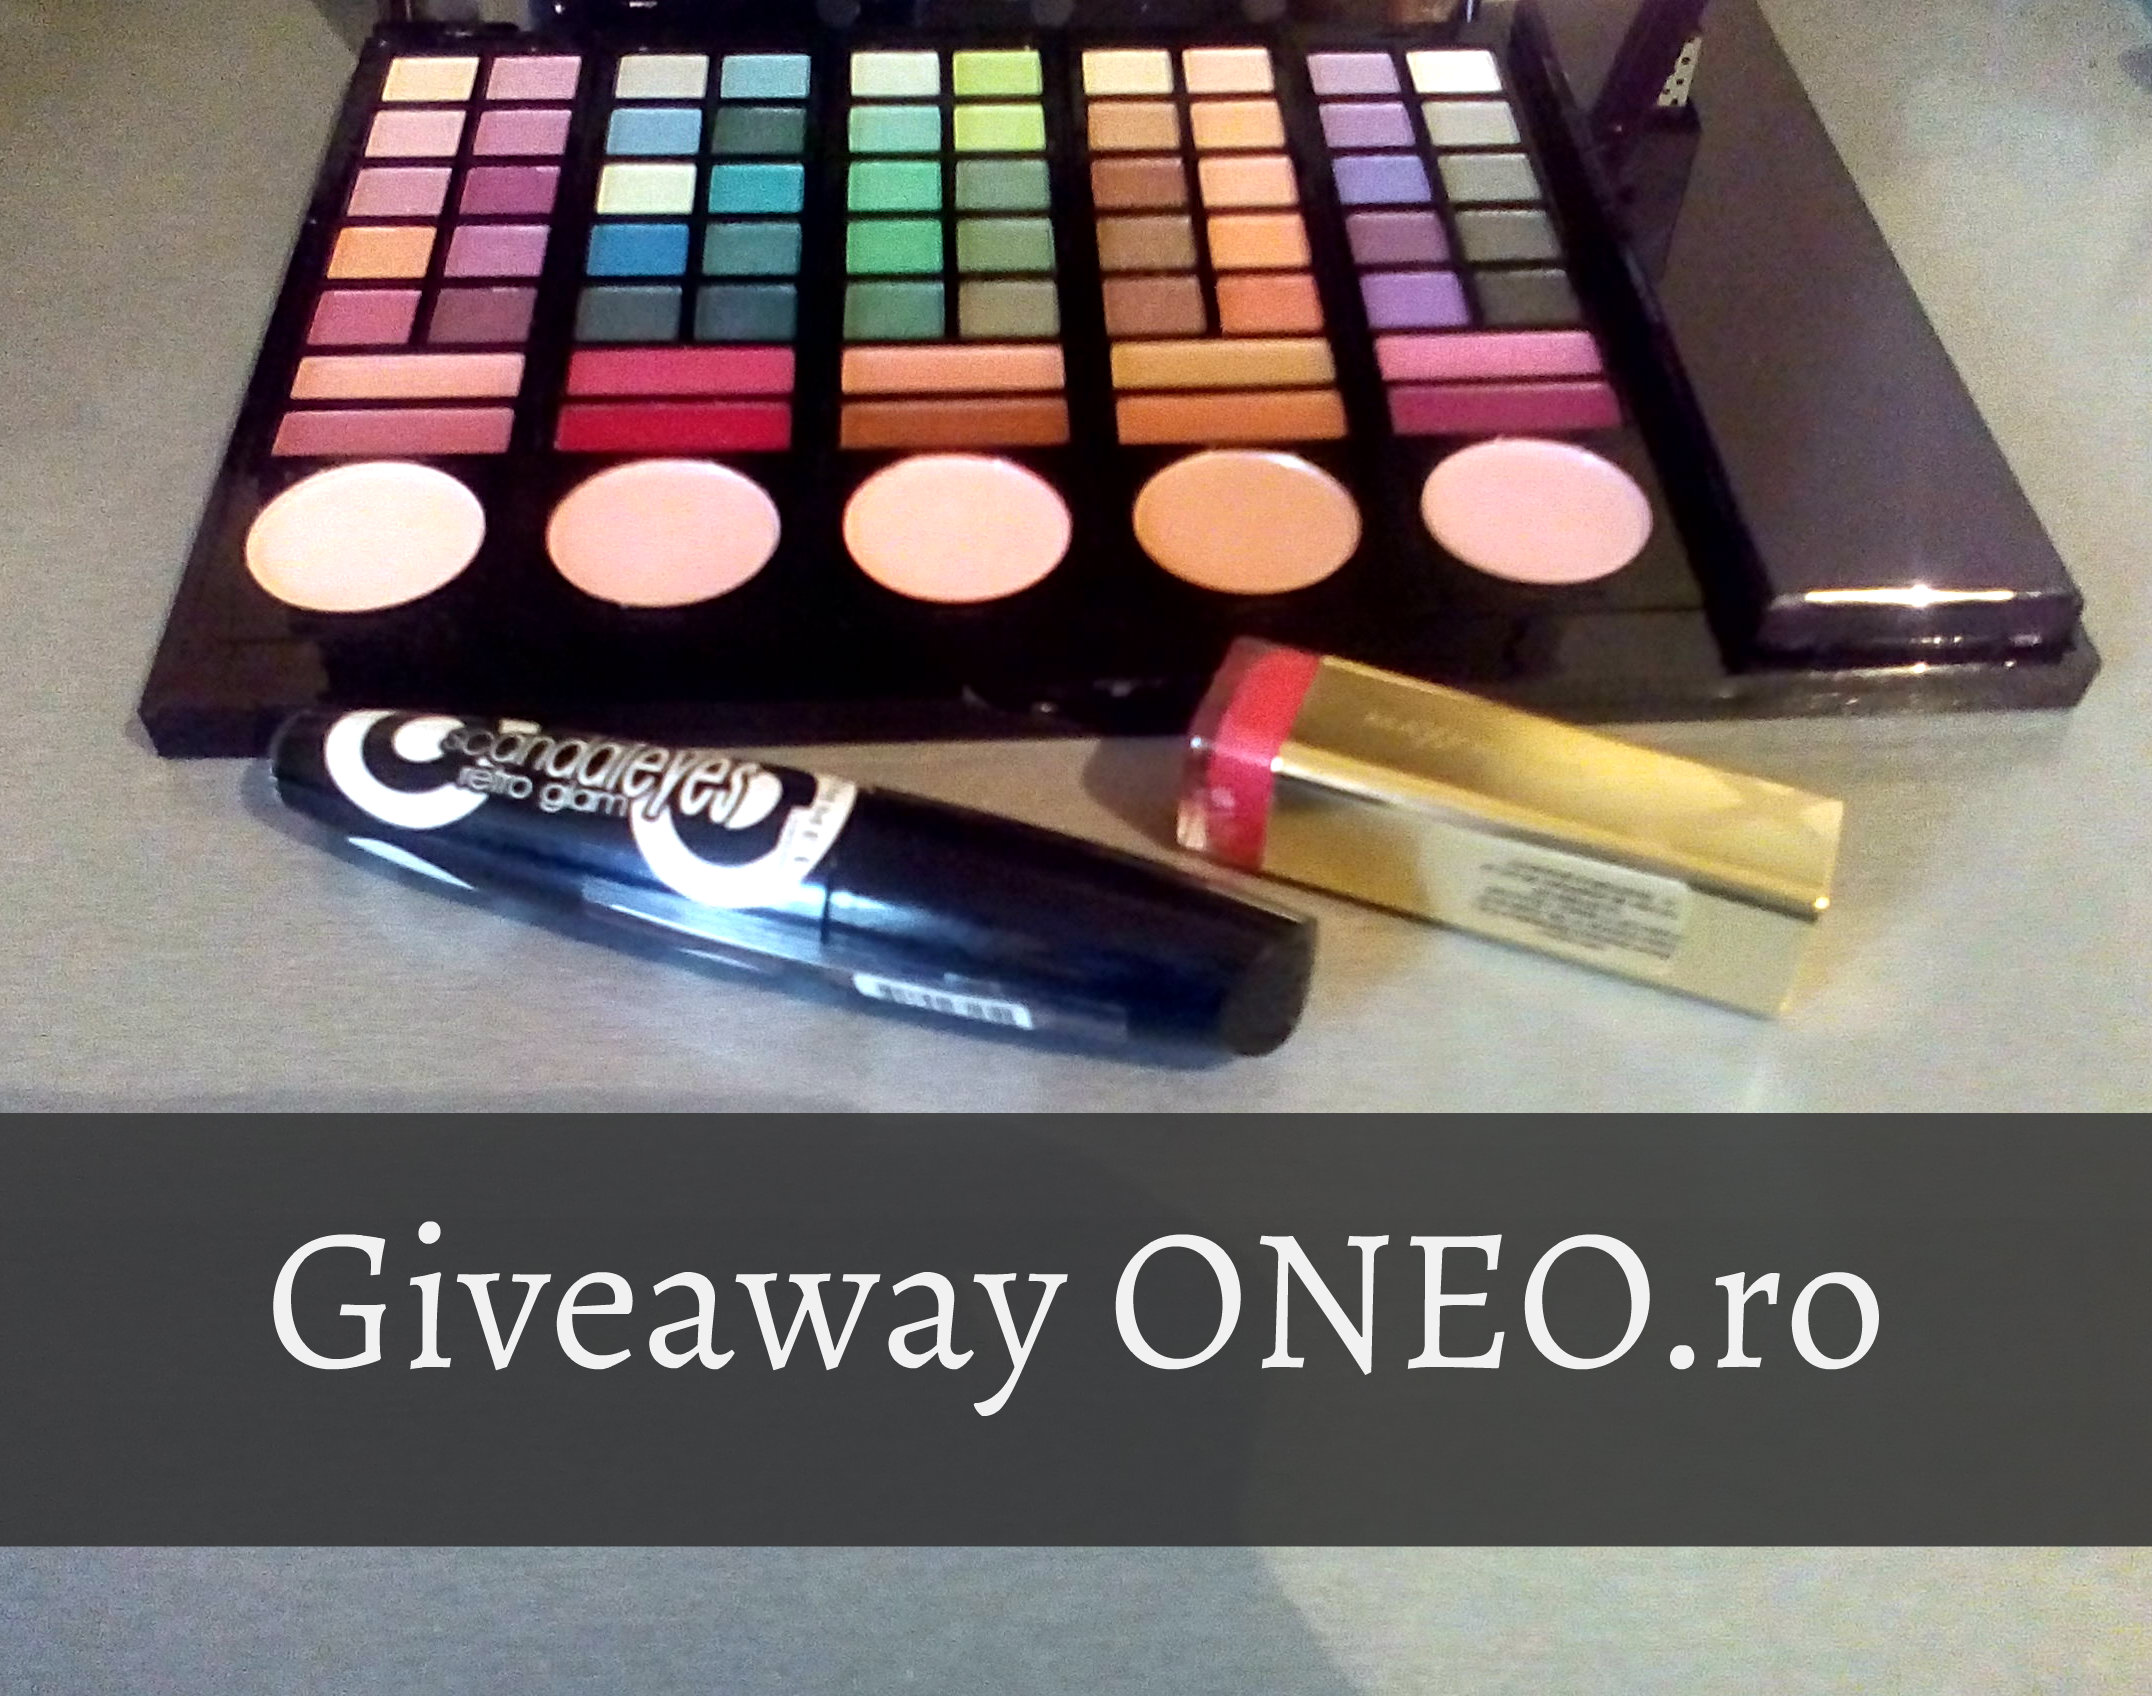 giveaway oneo.ro